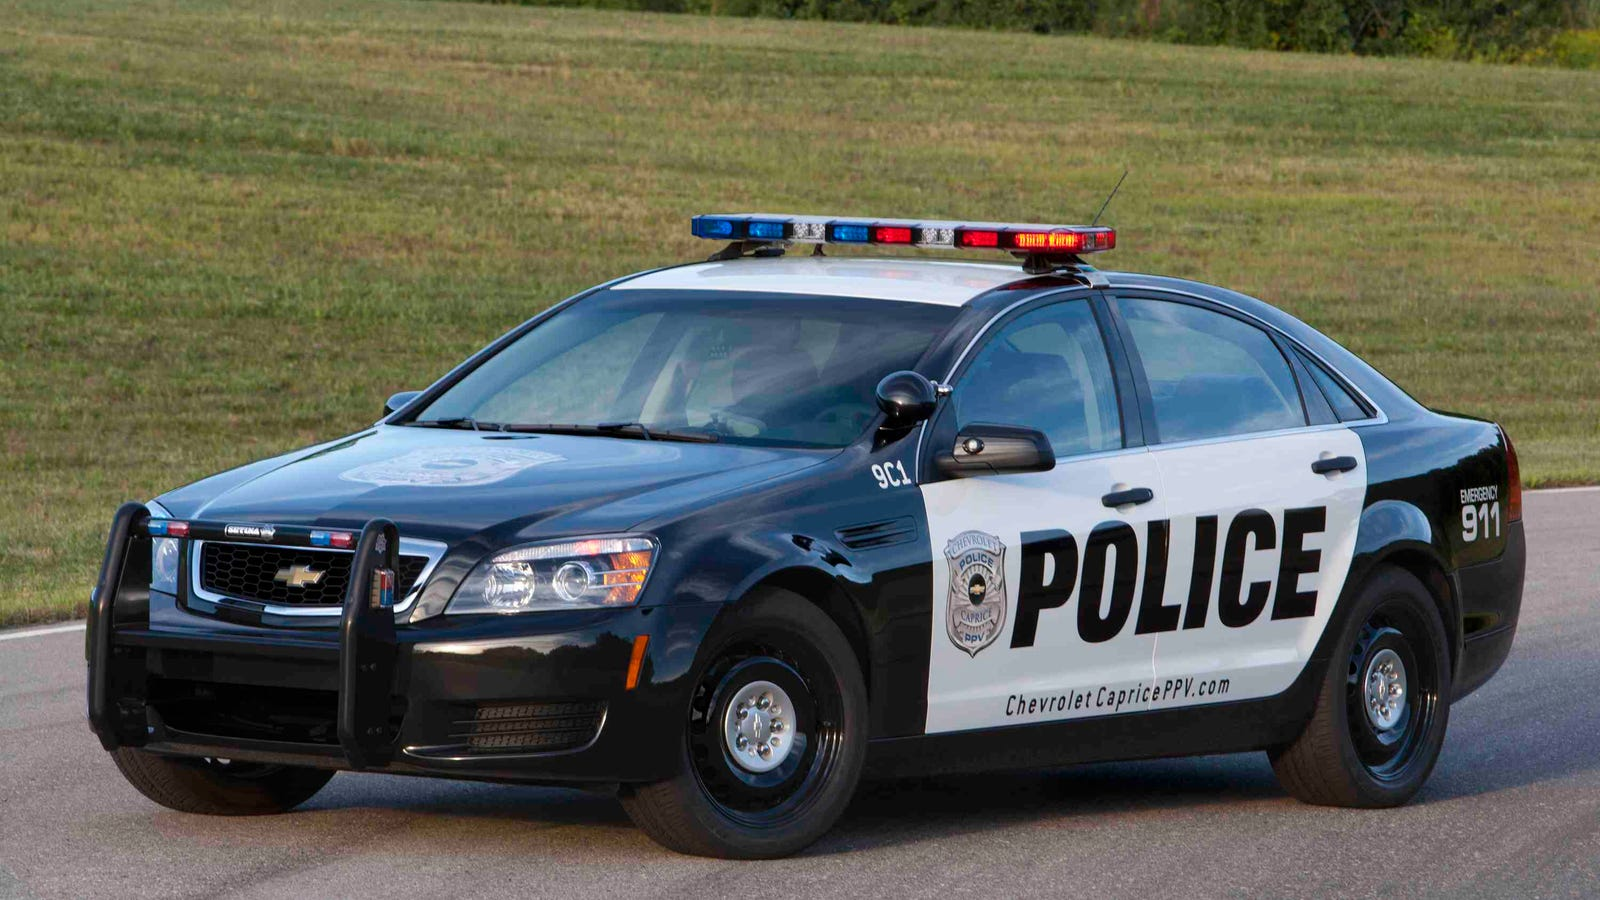 Future of General Motors Police Vehicles?